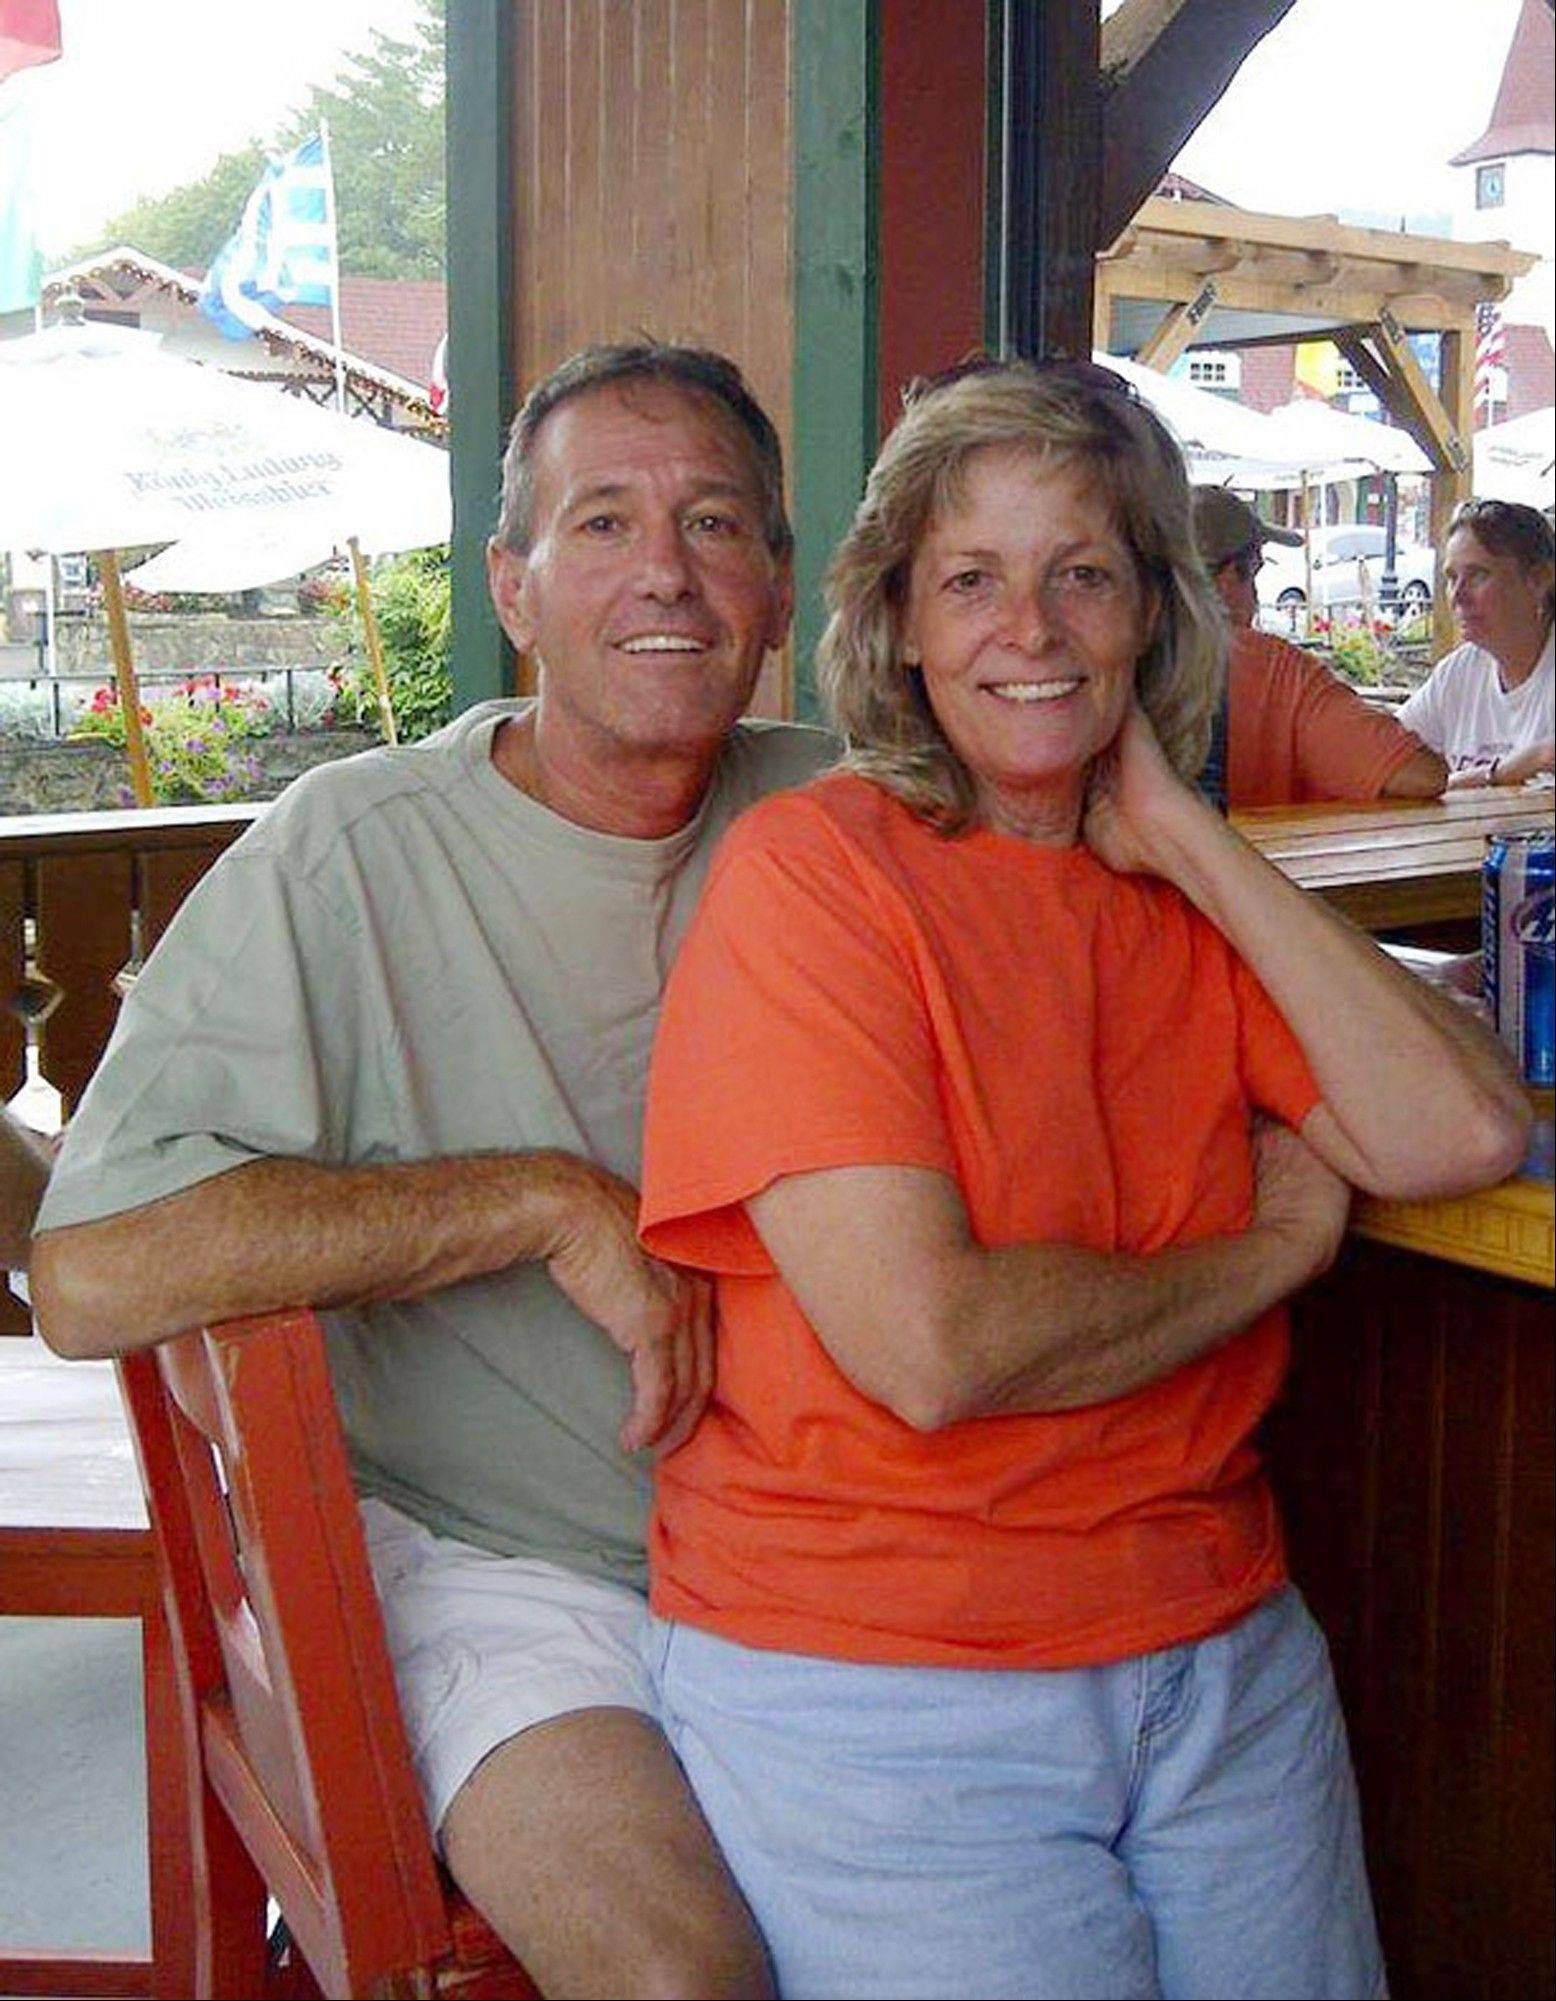 "Patty Konietzky and her husband Henry ""Butch"" Konietsky after a tubing trip in Helen, Ga. Butch died 60 hours after contracting the bacteria vibrio vulnificus. The couple went crabbing in the Halifax River near Ormond Beach in September 2013. Butch developed a sore which was later confirmed to be vibrio vulnificus."